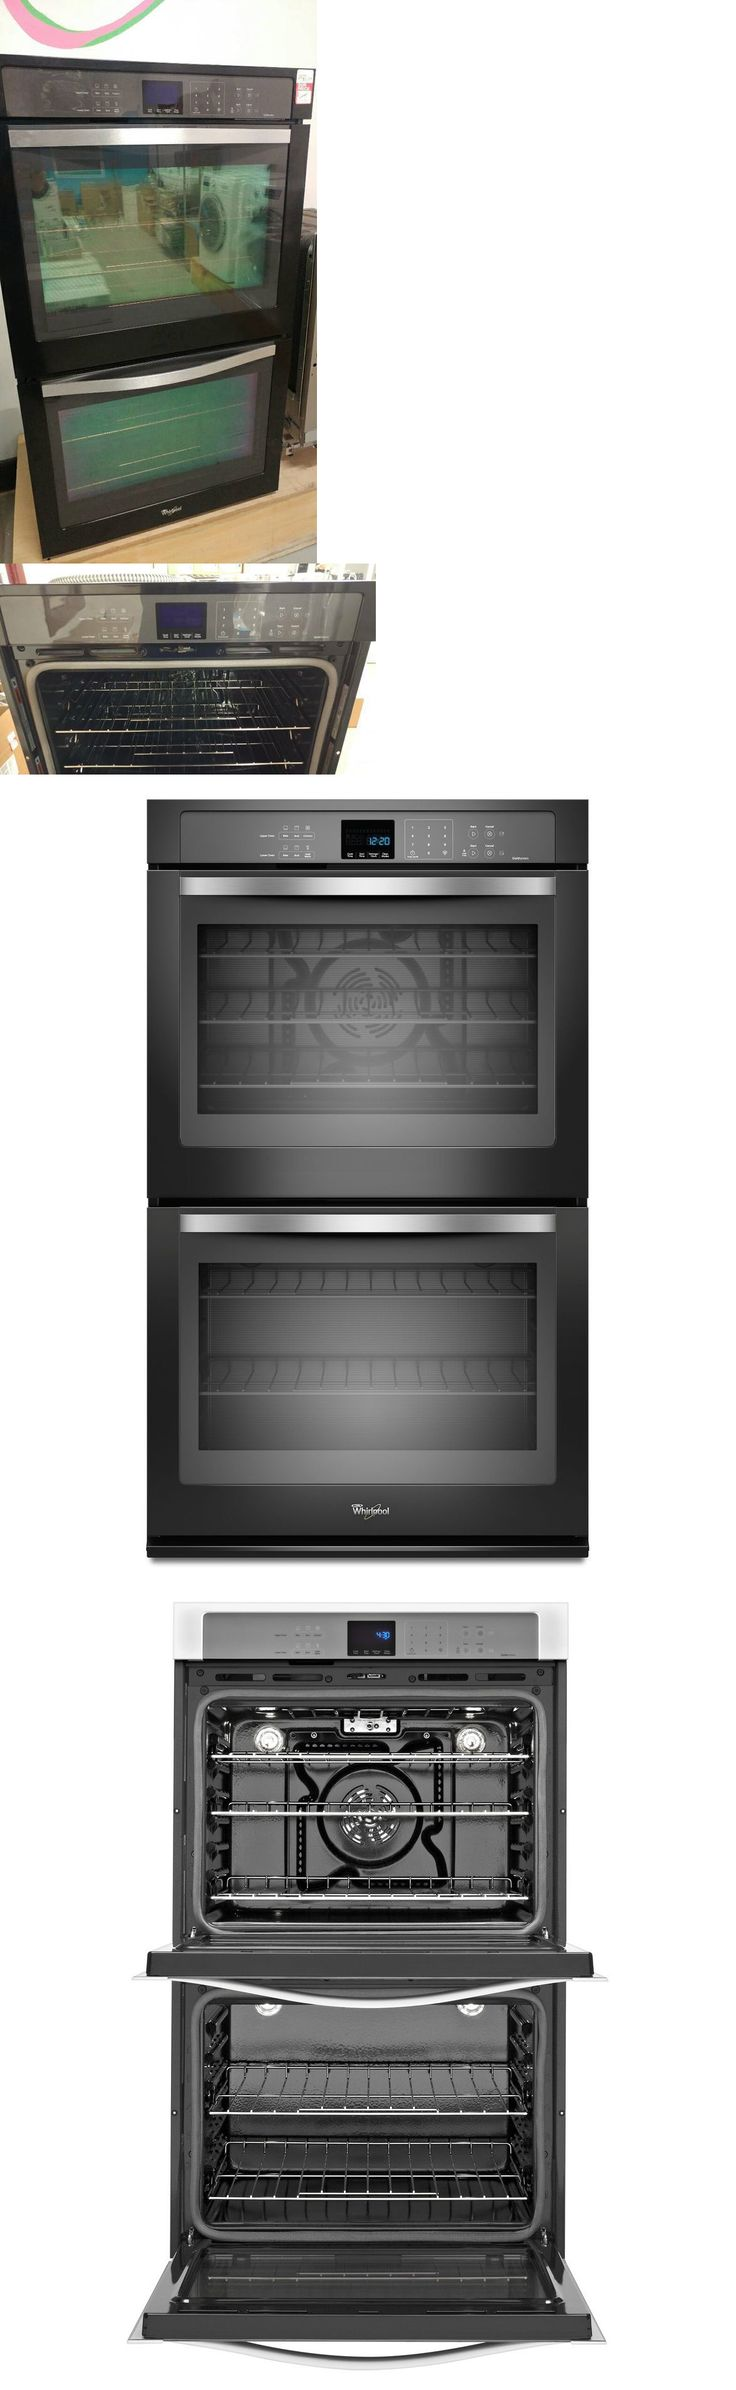 Whirlpool white ice double wall oven - Wall Ovens 71318 Whirlpool Gold 30 Double Wall Oven W True Convection Cooking Black